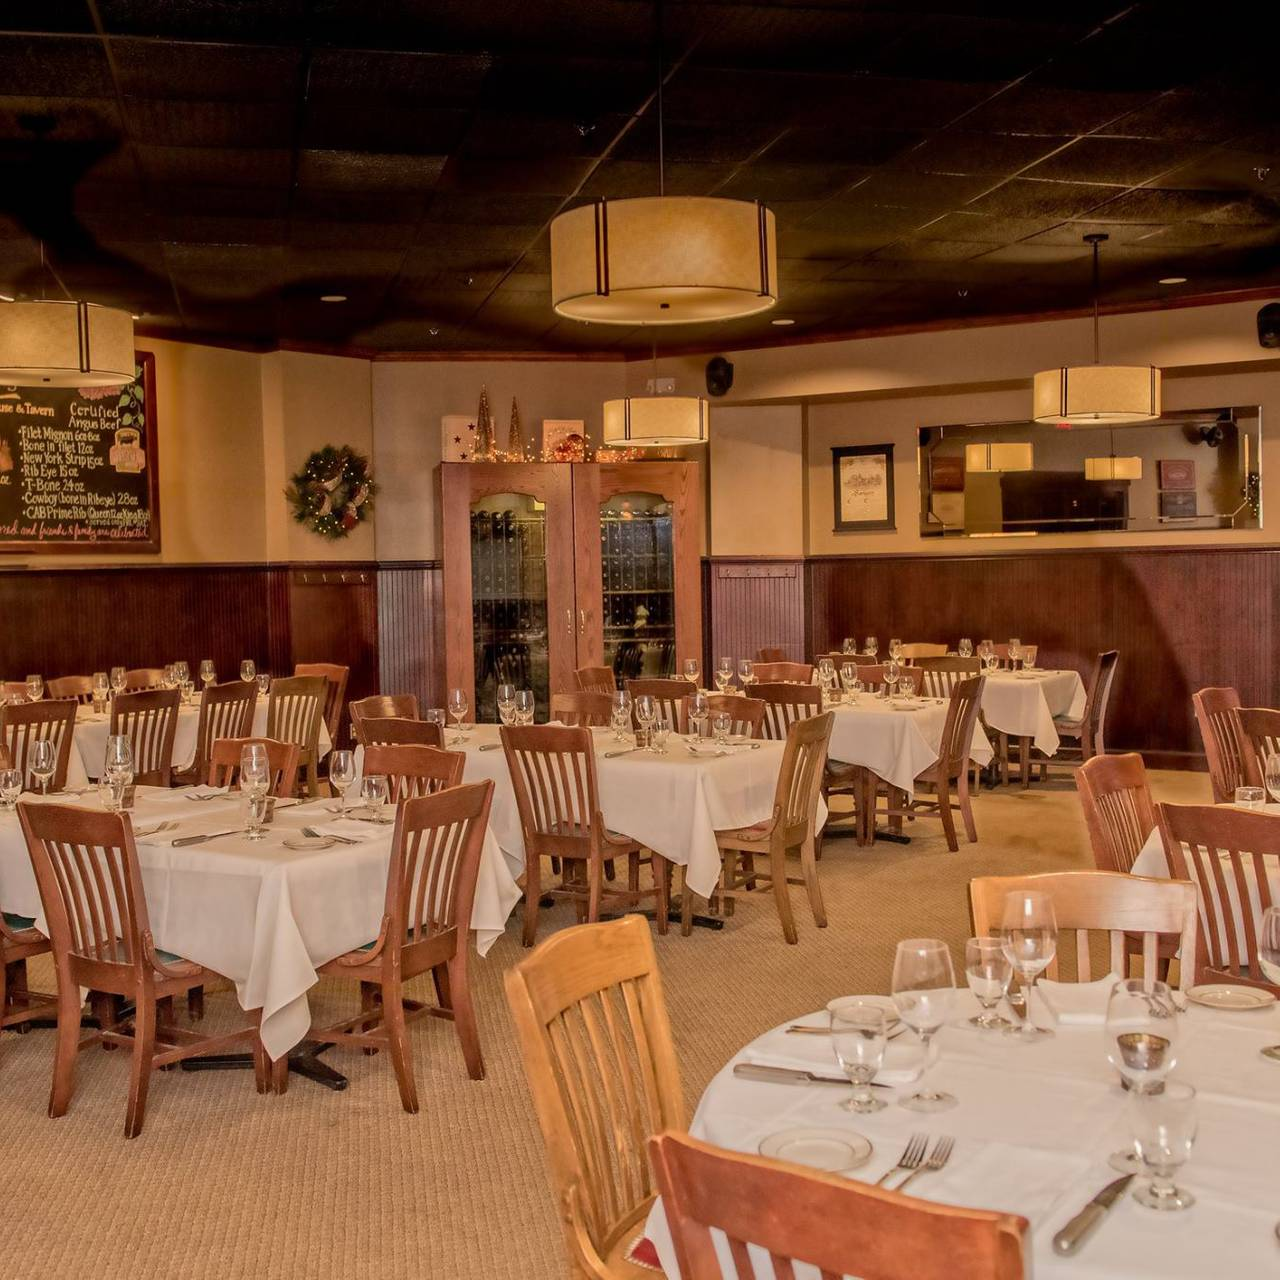 Jimmy V's Steakhouse and Tavern Restaurant - Cary, NC